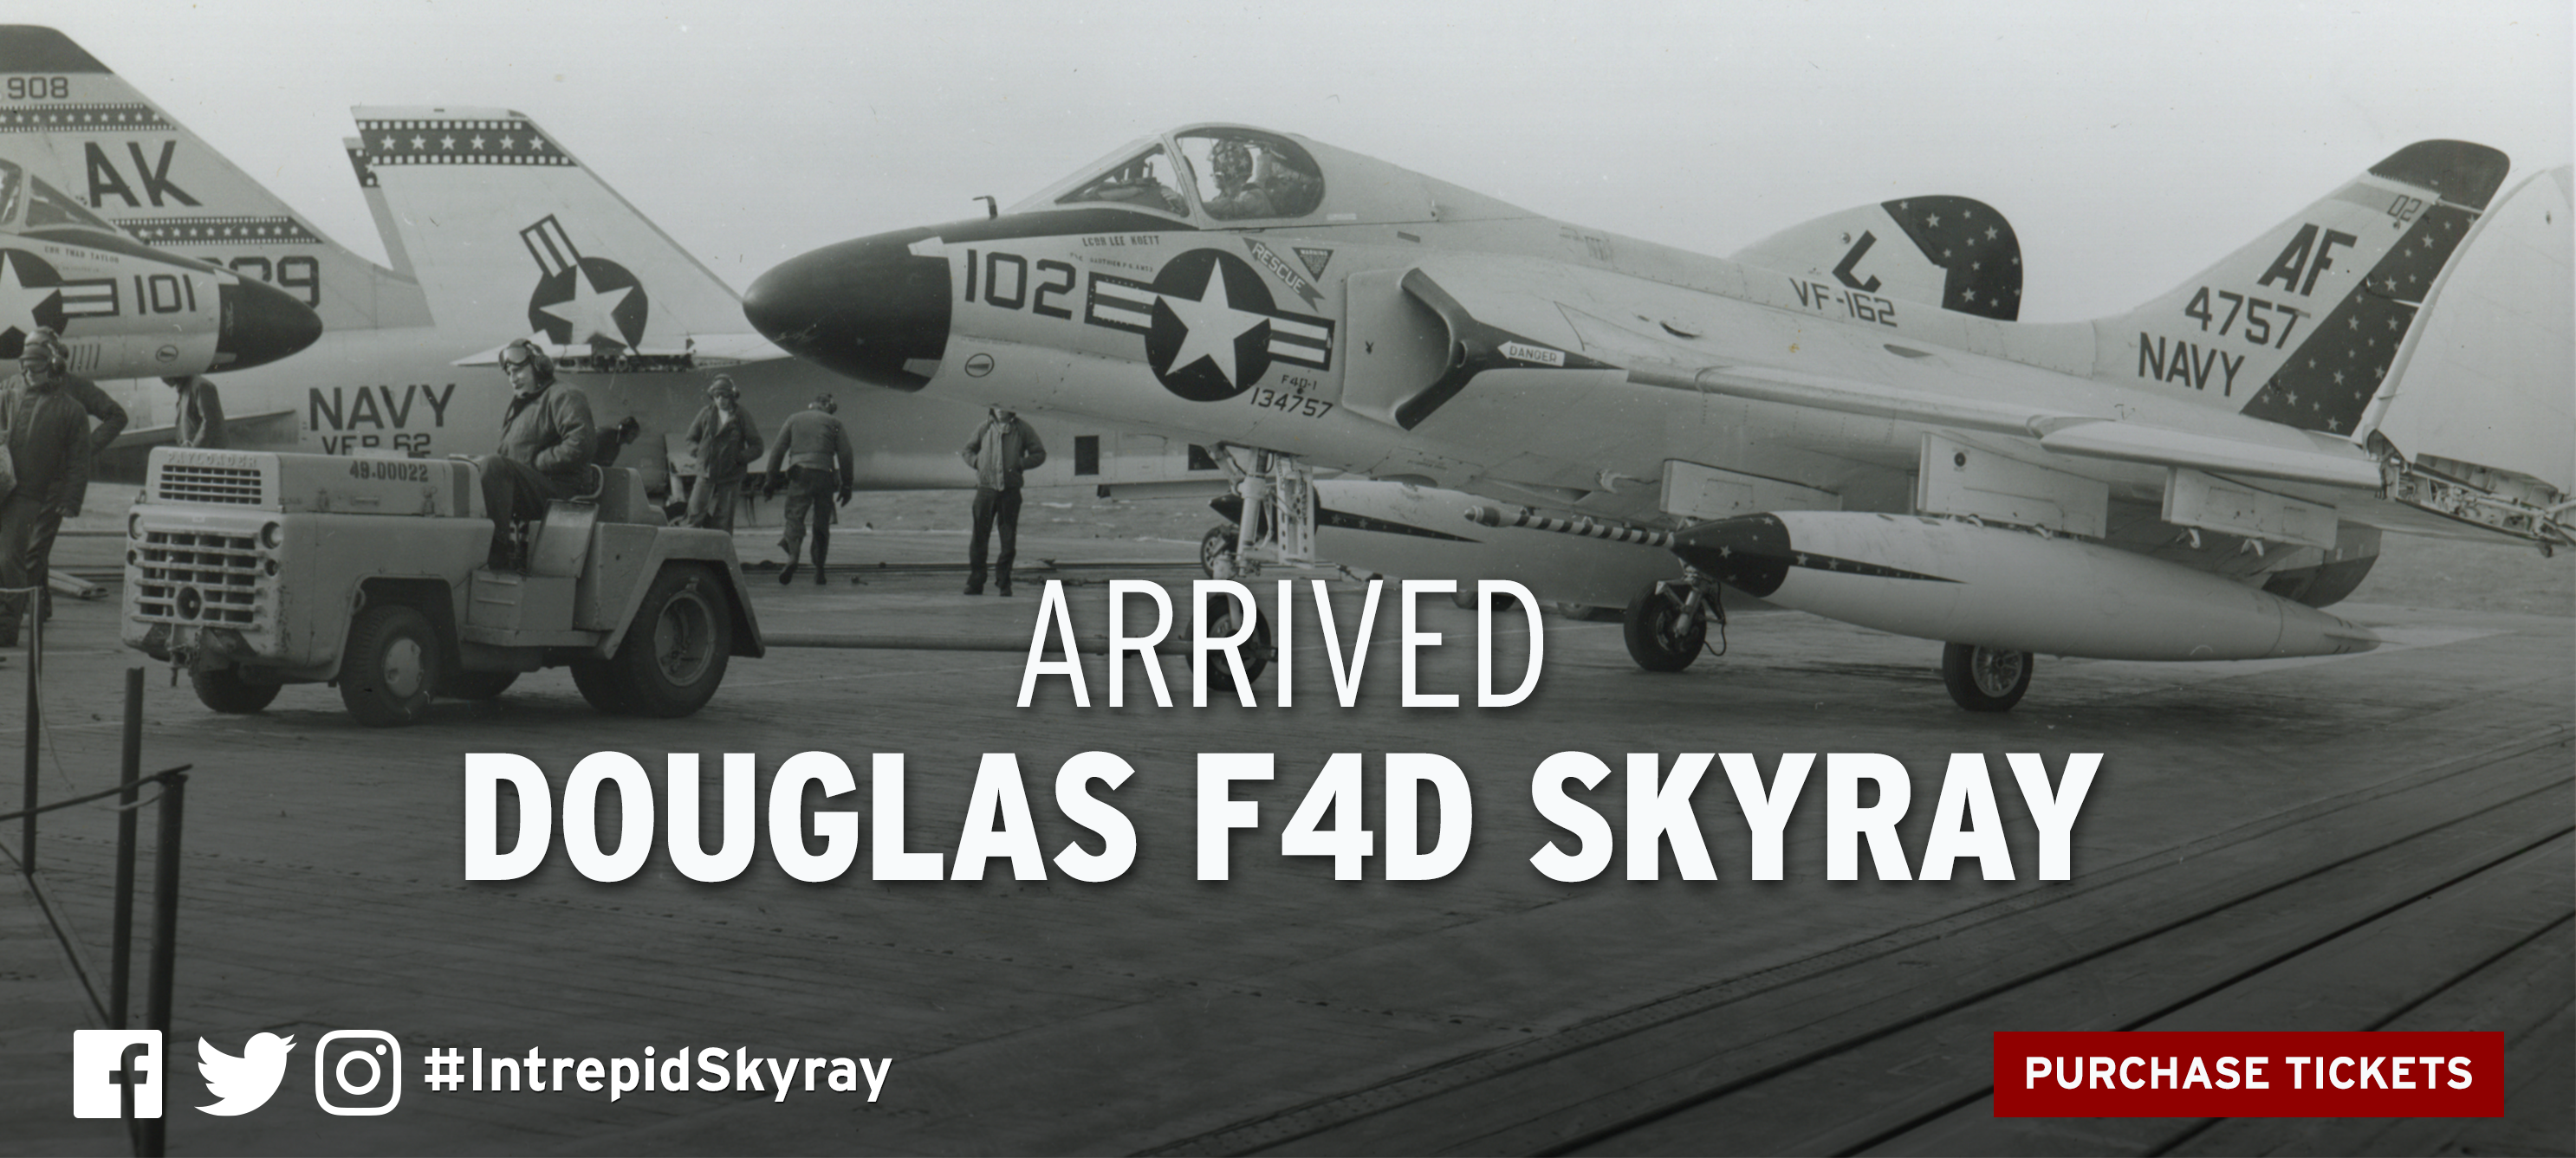 Intrepid Museum Acquires New Historic Aircraft: Douglas F4D Skyray